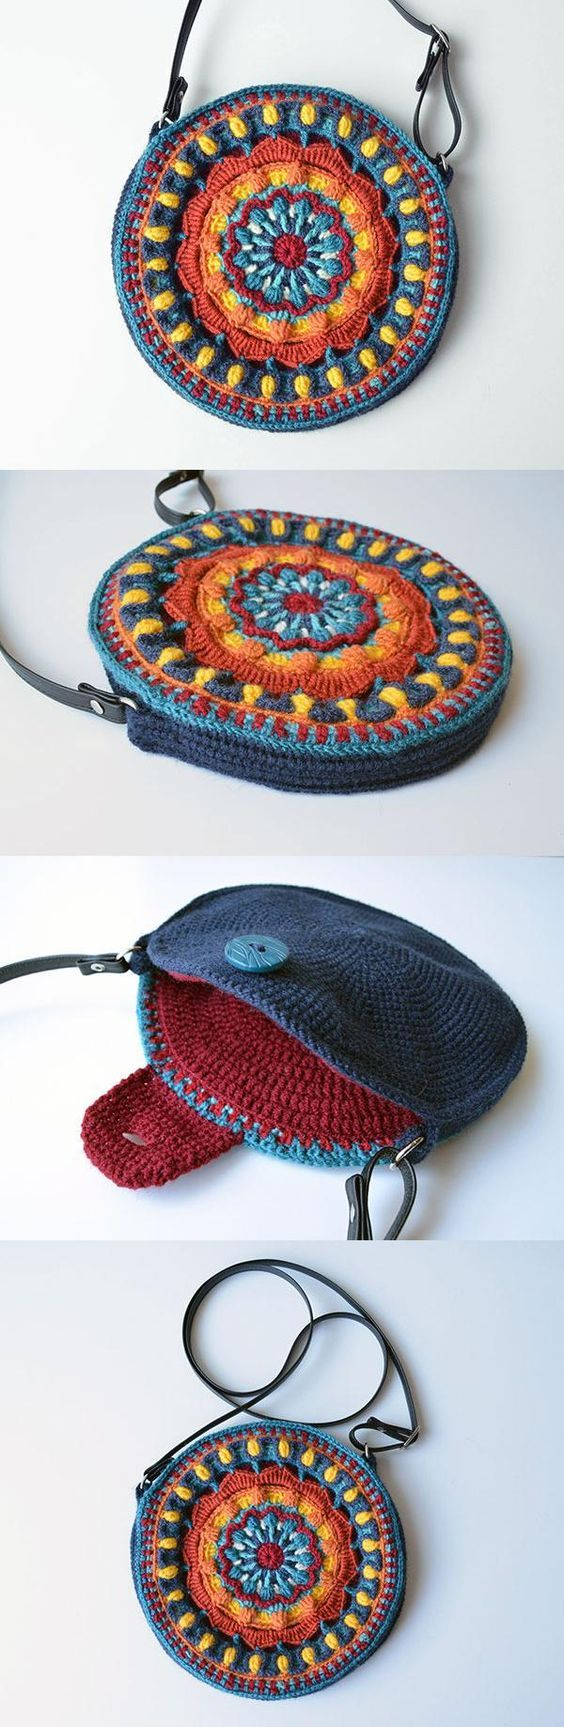 My Hobby Is Crochet: Kaleidoscope Mandala Bag crochet pattern by Lilla Bjorn Crochet